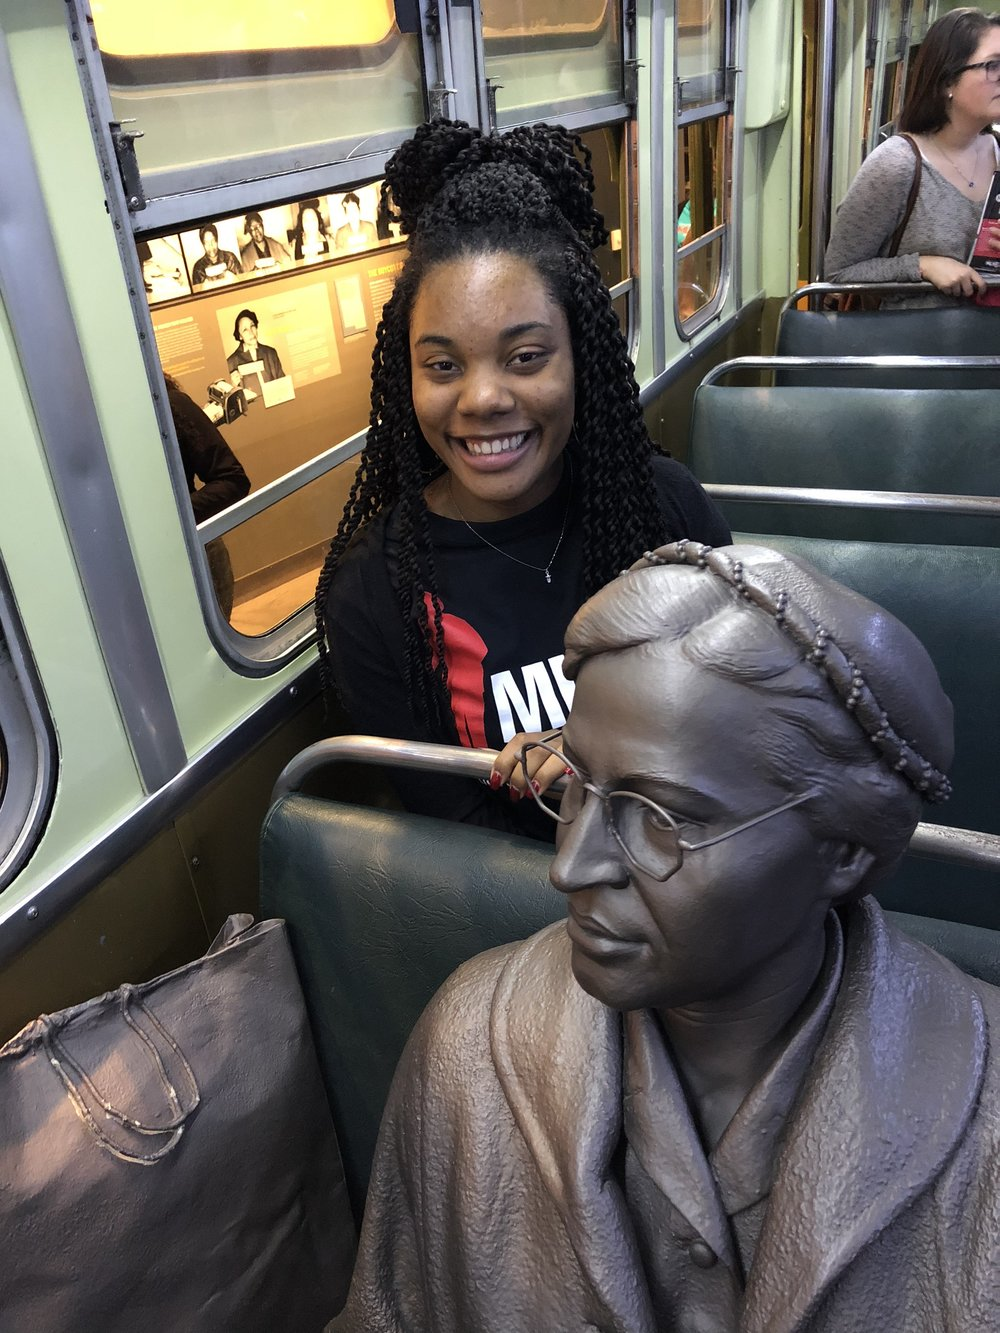 One of the exhibits that shows the bus where Rosa Parks refused to give up her seat to a white man